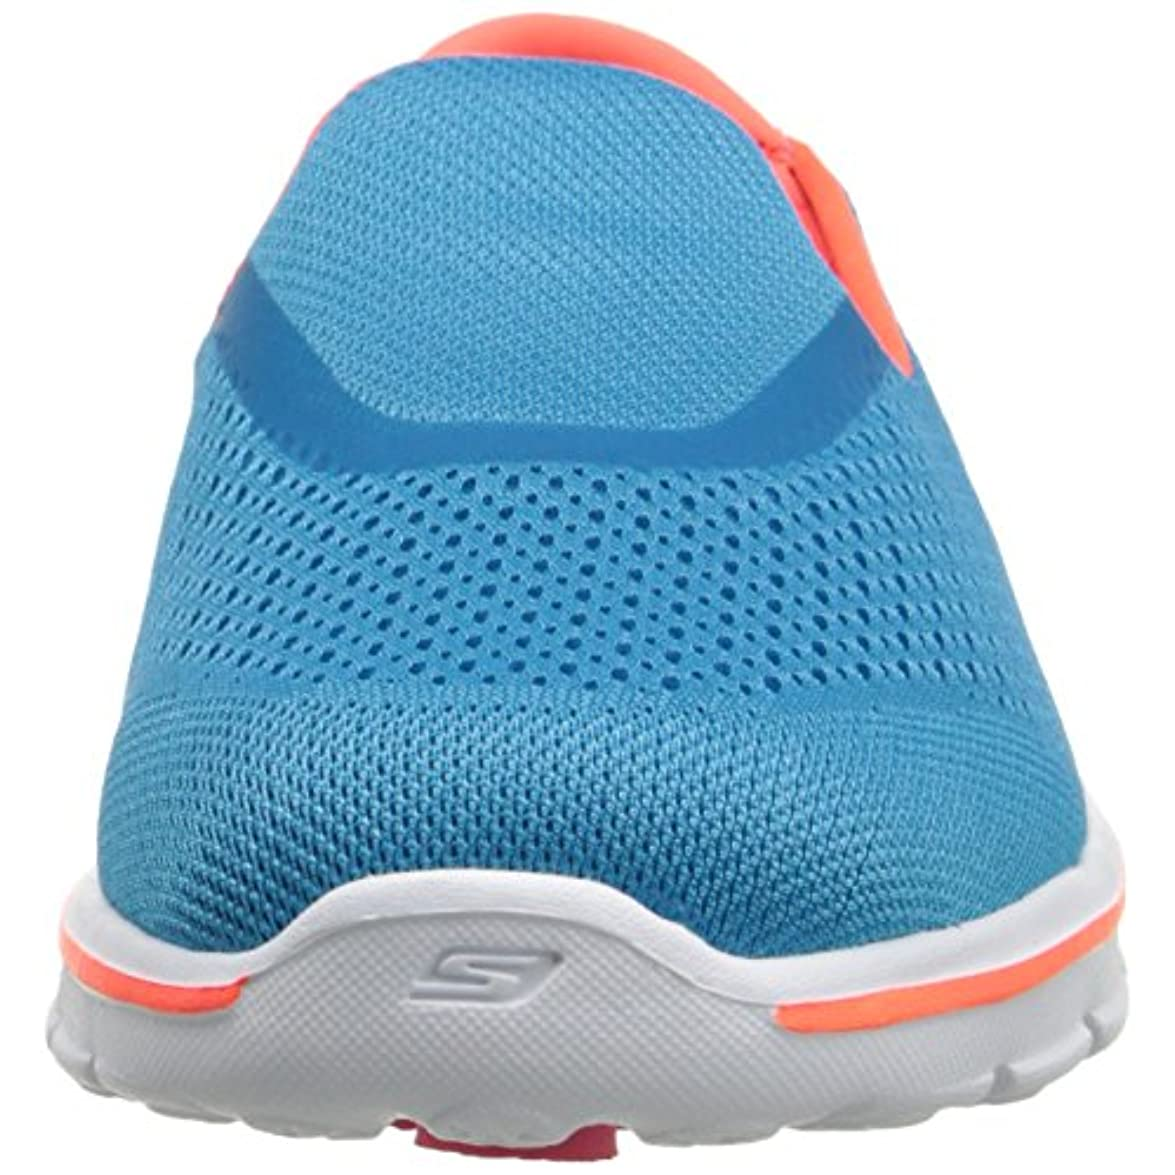 Skechers Go Walk 3 nbsp;– nbsp;strike Sneakers Da Donna